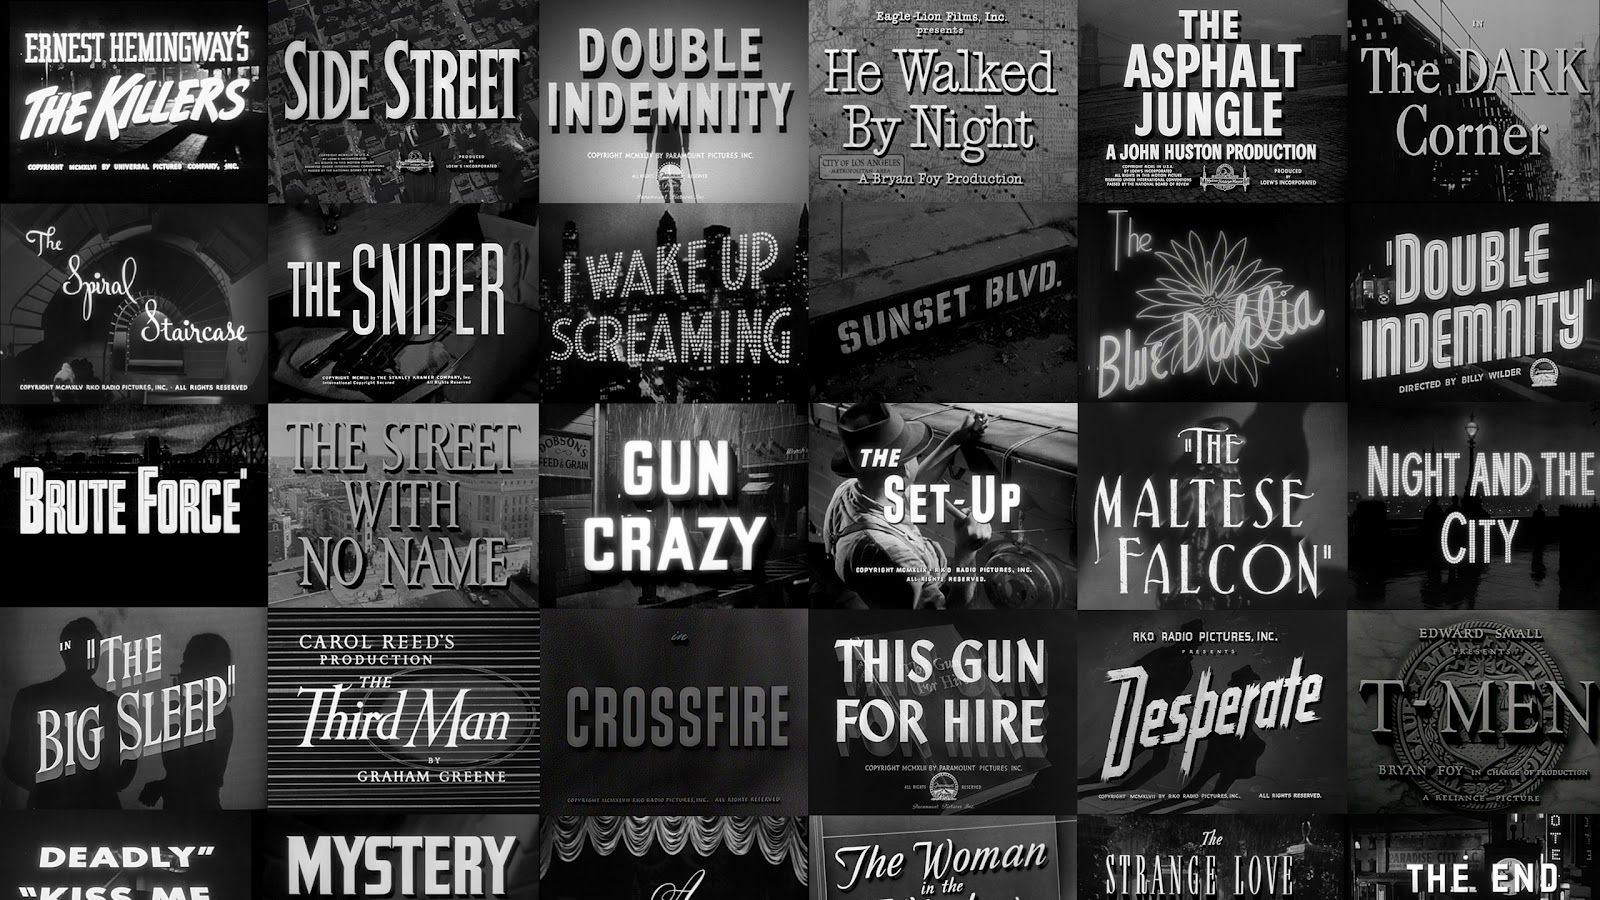 film noir montage from filmmakeriq com stine the main character film noir montage from filmmakeriq com stine the main character of city of